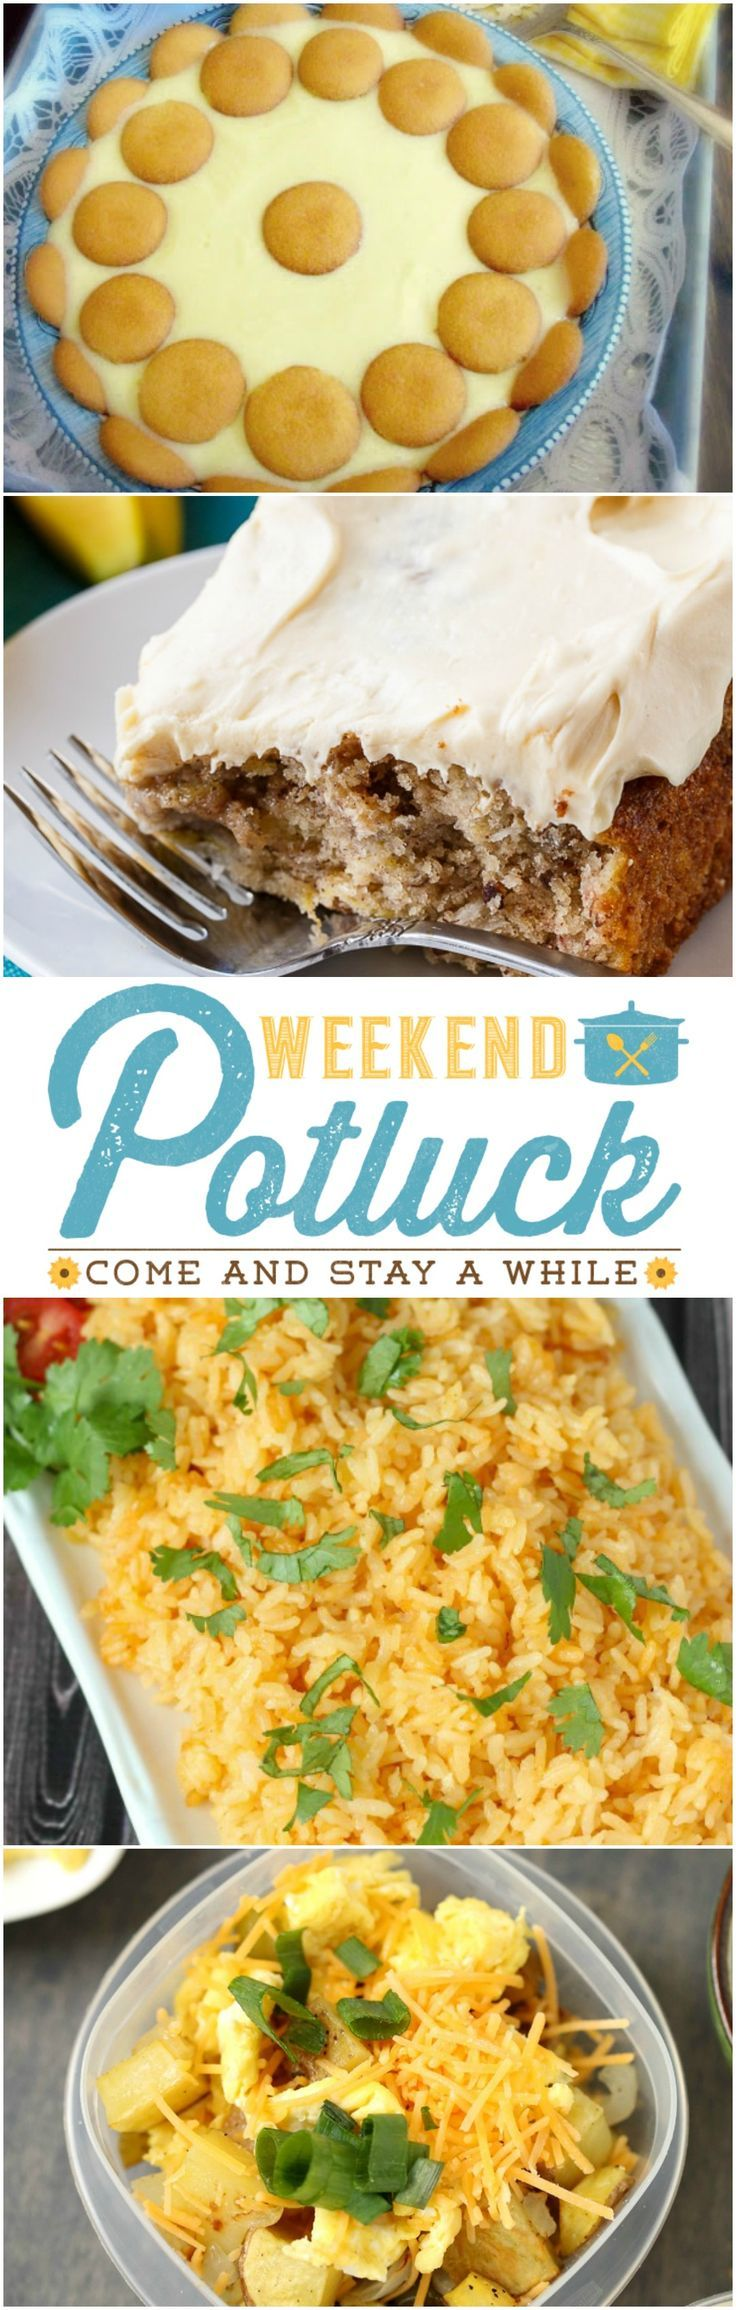 Featured recipes at Weekend Potluck include: One Layer Hummingbird Cake, Daddy's Lemon Icebox Pie, Restaurant Style Mexican Rice and Make Ahead Breakfast Bowls